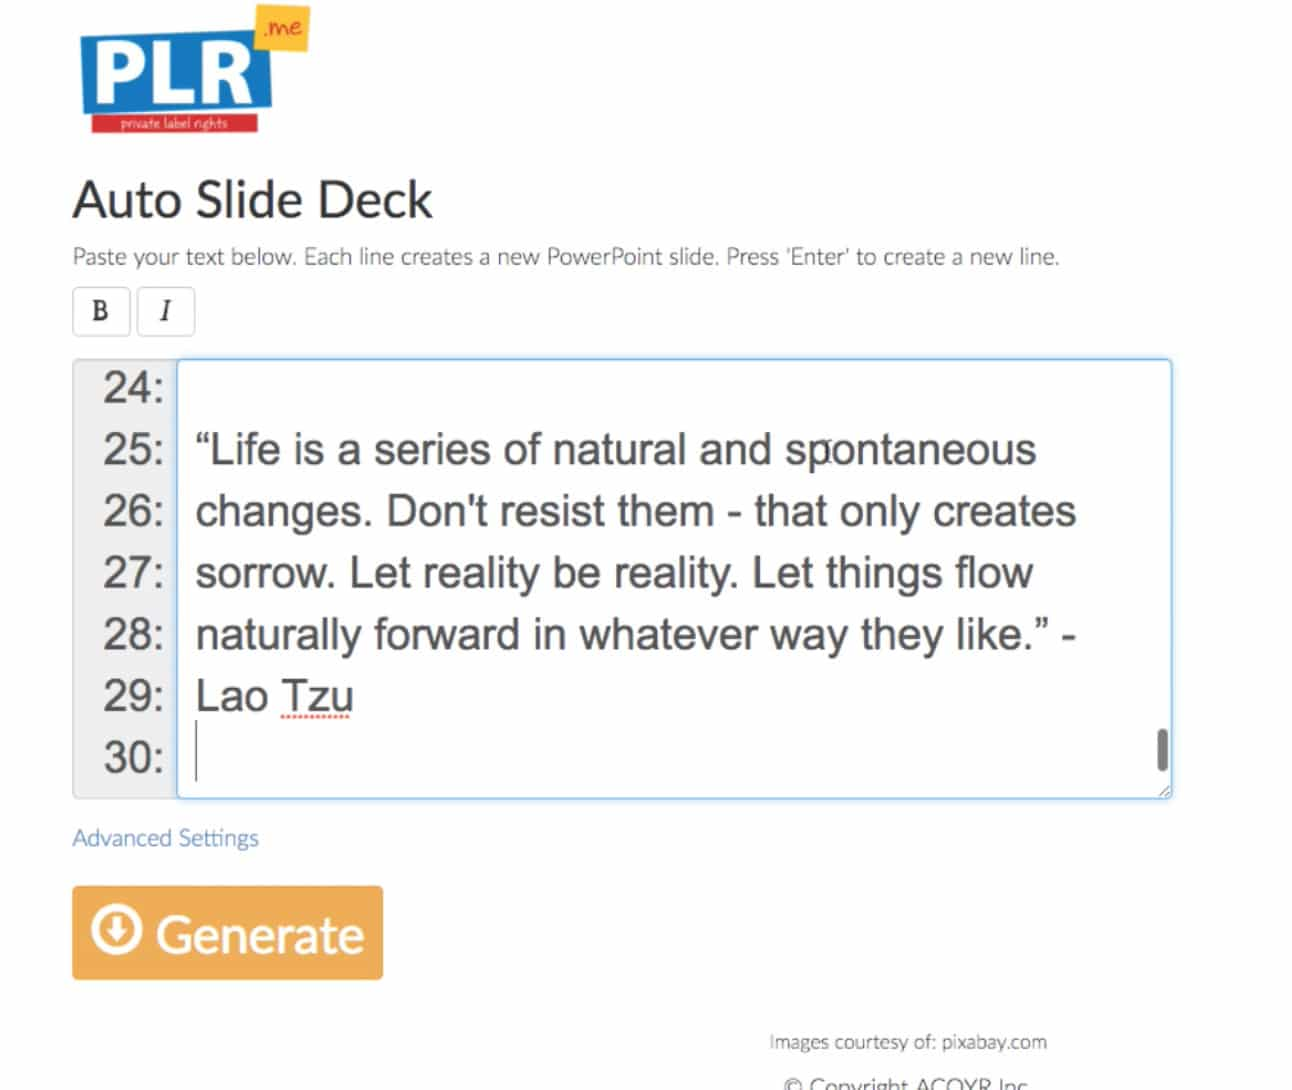 Copy Text Into Auto Slide Deck